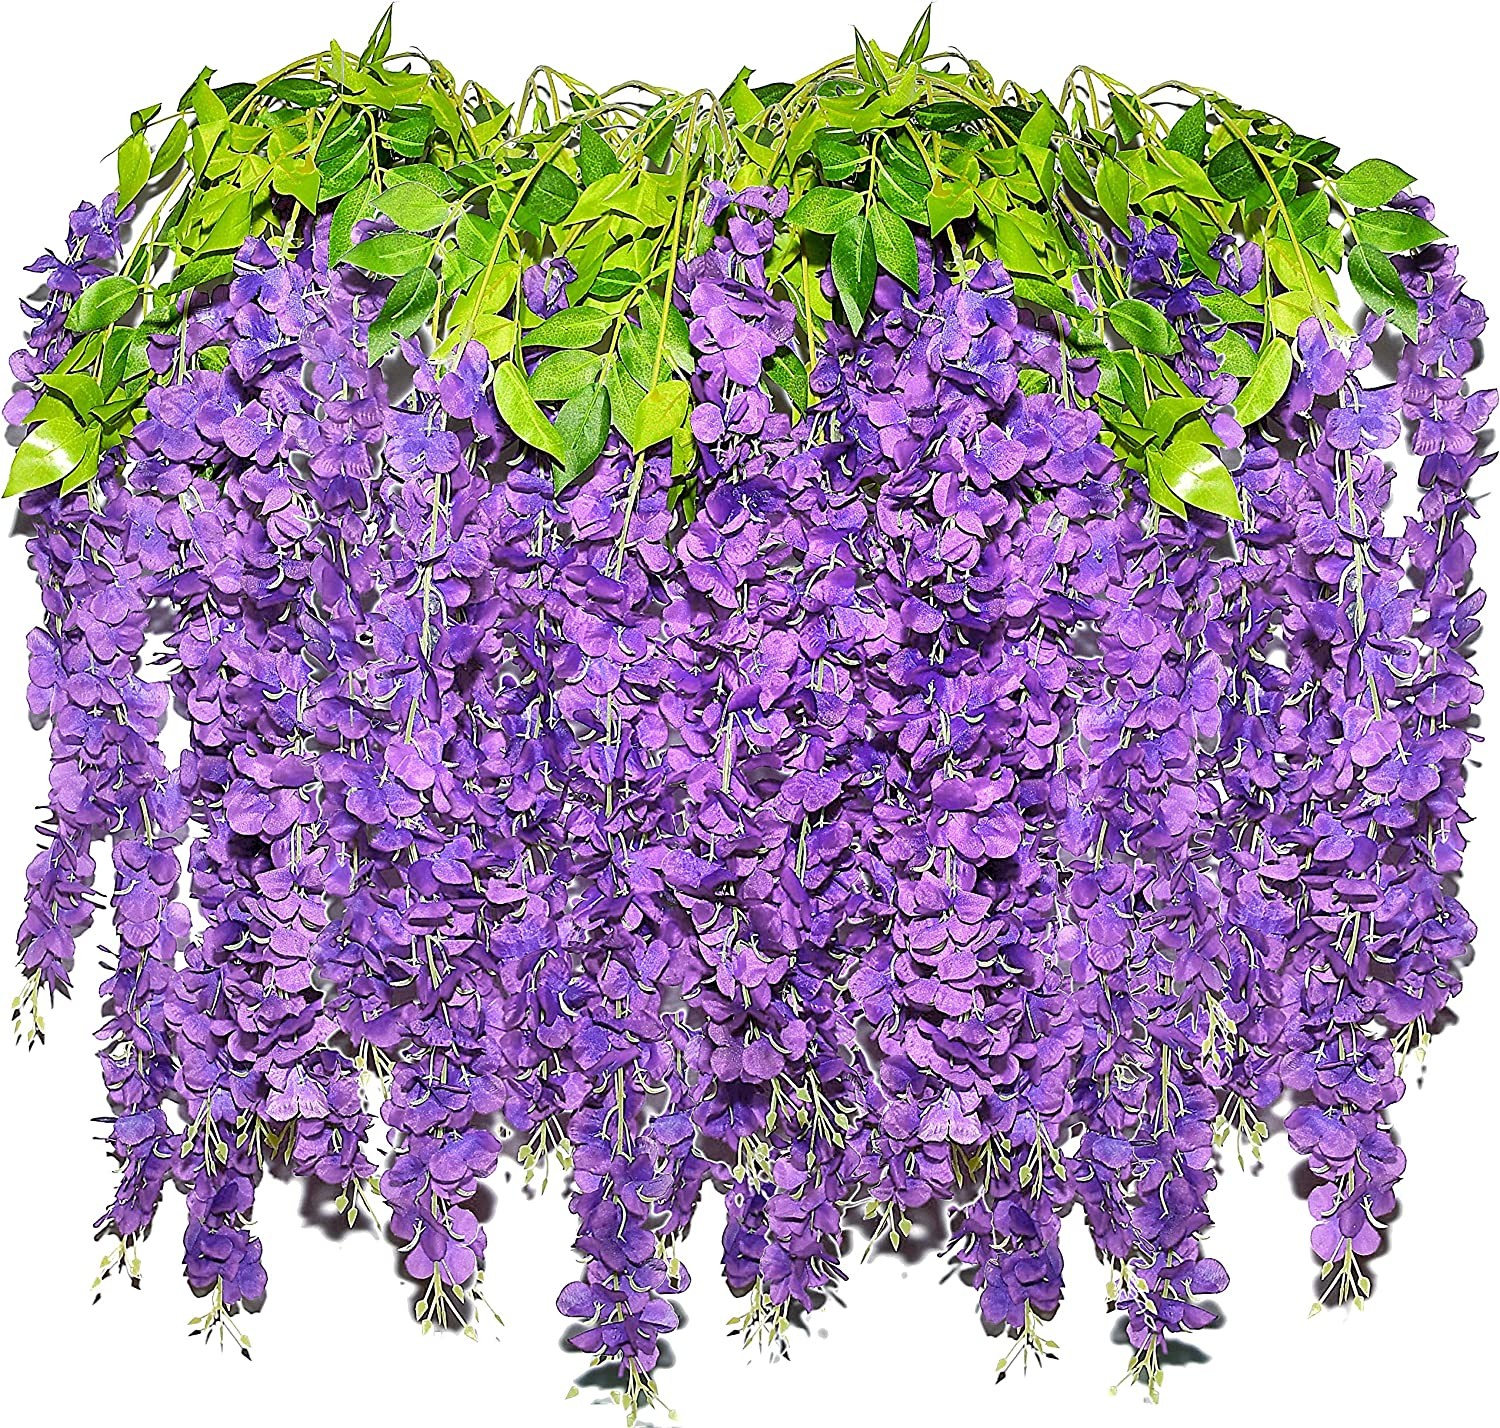 Artificial Wisteria Hanging Flowers for Decoration - 3.6FT 12 in a Pack Purple Long Fake Plant Wisteria Garland Vines Wedding Decorations Real Touch Wisteria Silk Home Party Decor Flower - by Retonia